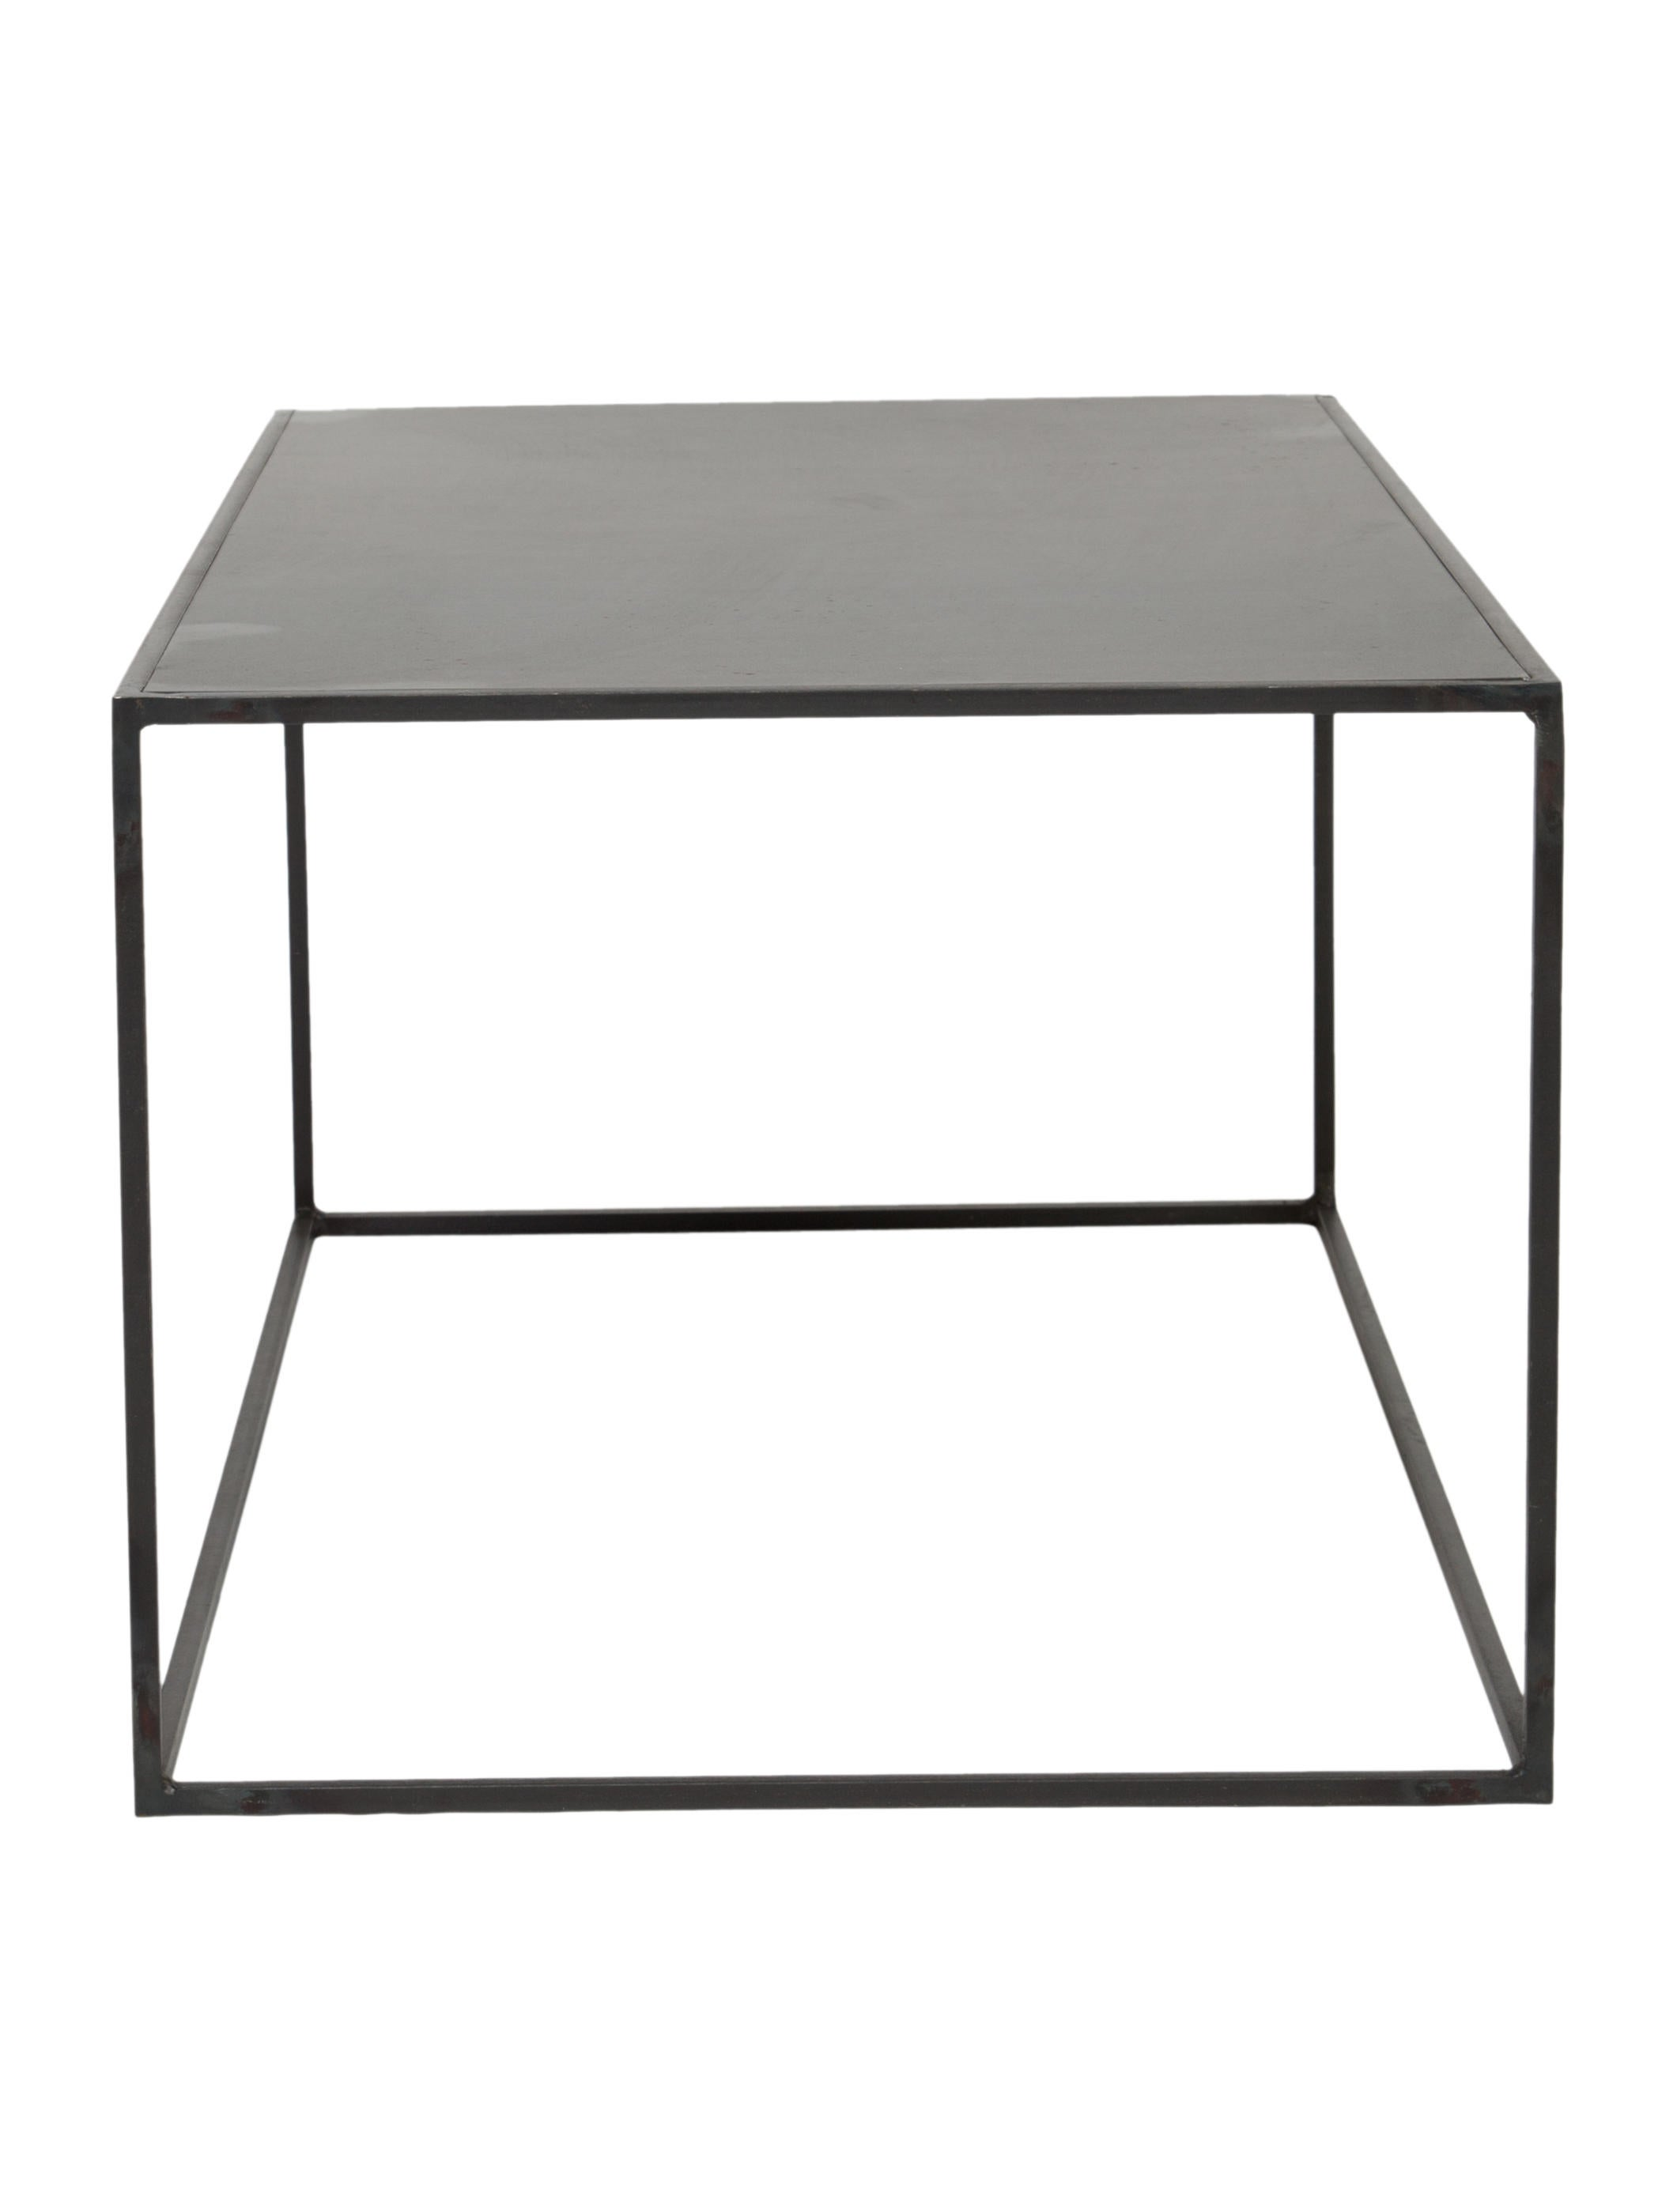 Abc Carpet Home Cube Coffee Table Furniture Abcah20037 The Realreal